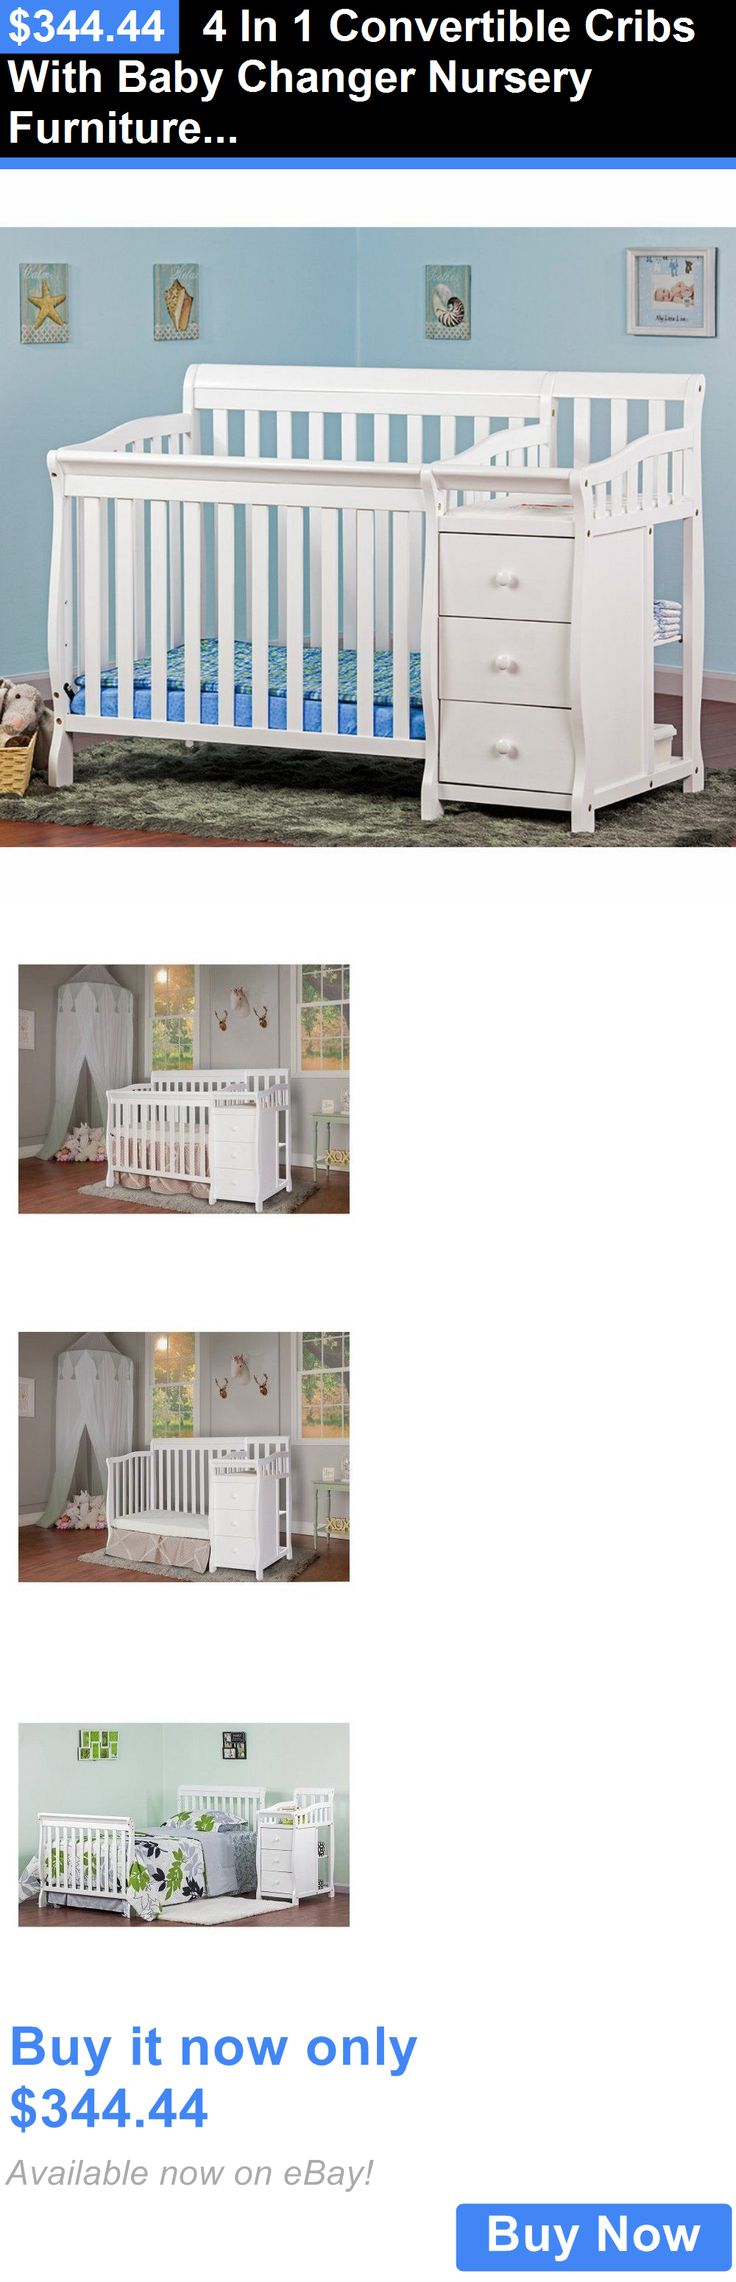 Baby Nursery: 4 In 1 Convertible Cribs With Baby Changer Nursery Furniture Sets Baby Furniture BUY IT NOW ONLY: $344.44